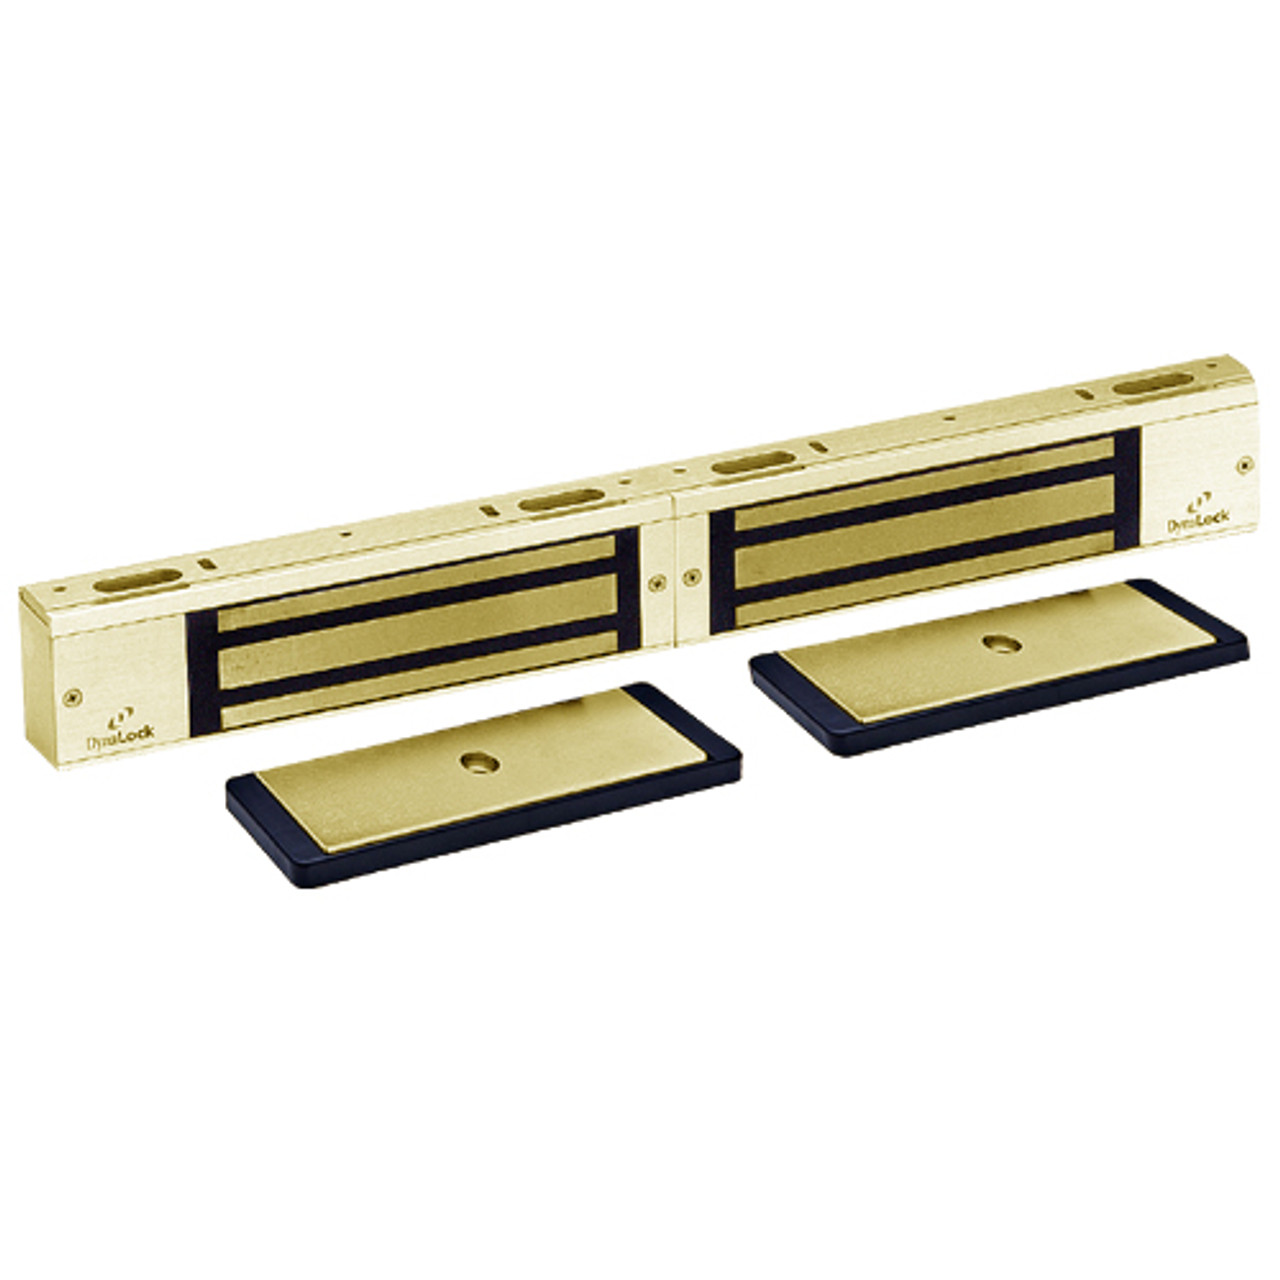 3002TJ32-US3-VOP2 DynaLock 3000 Series 1500 LBs Double Electromagnetic Lock for Inswing Door with Value Option Package in Bright Brass